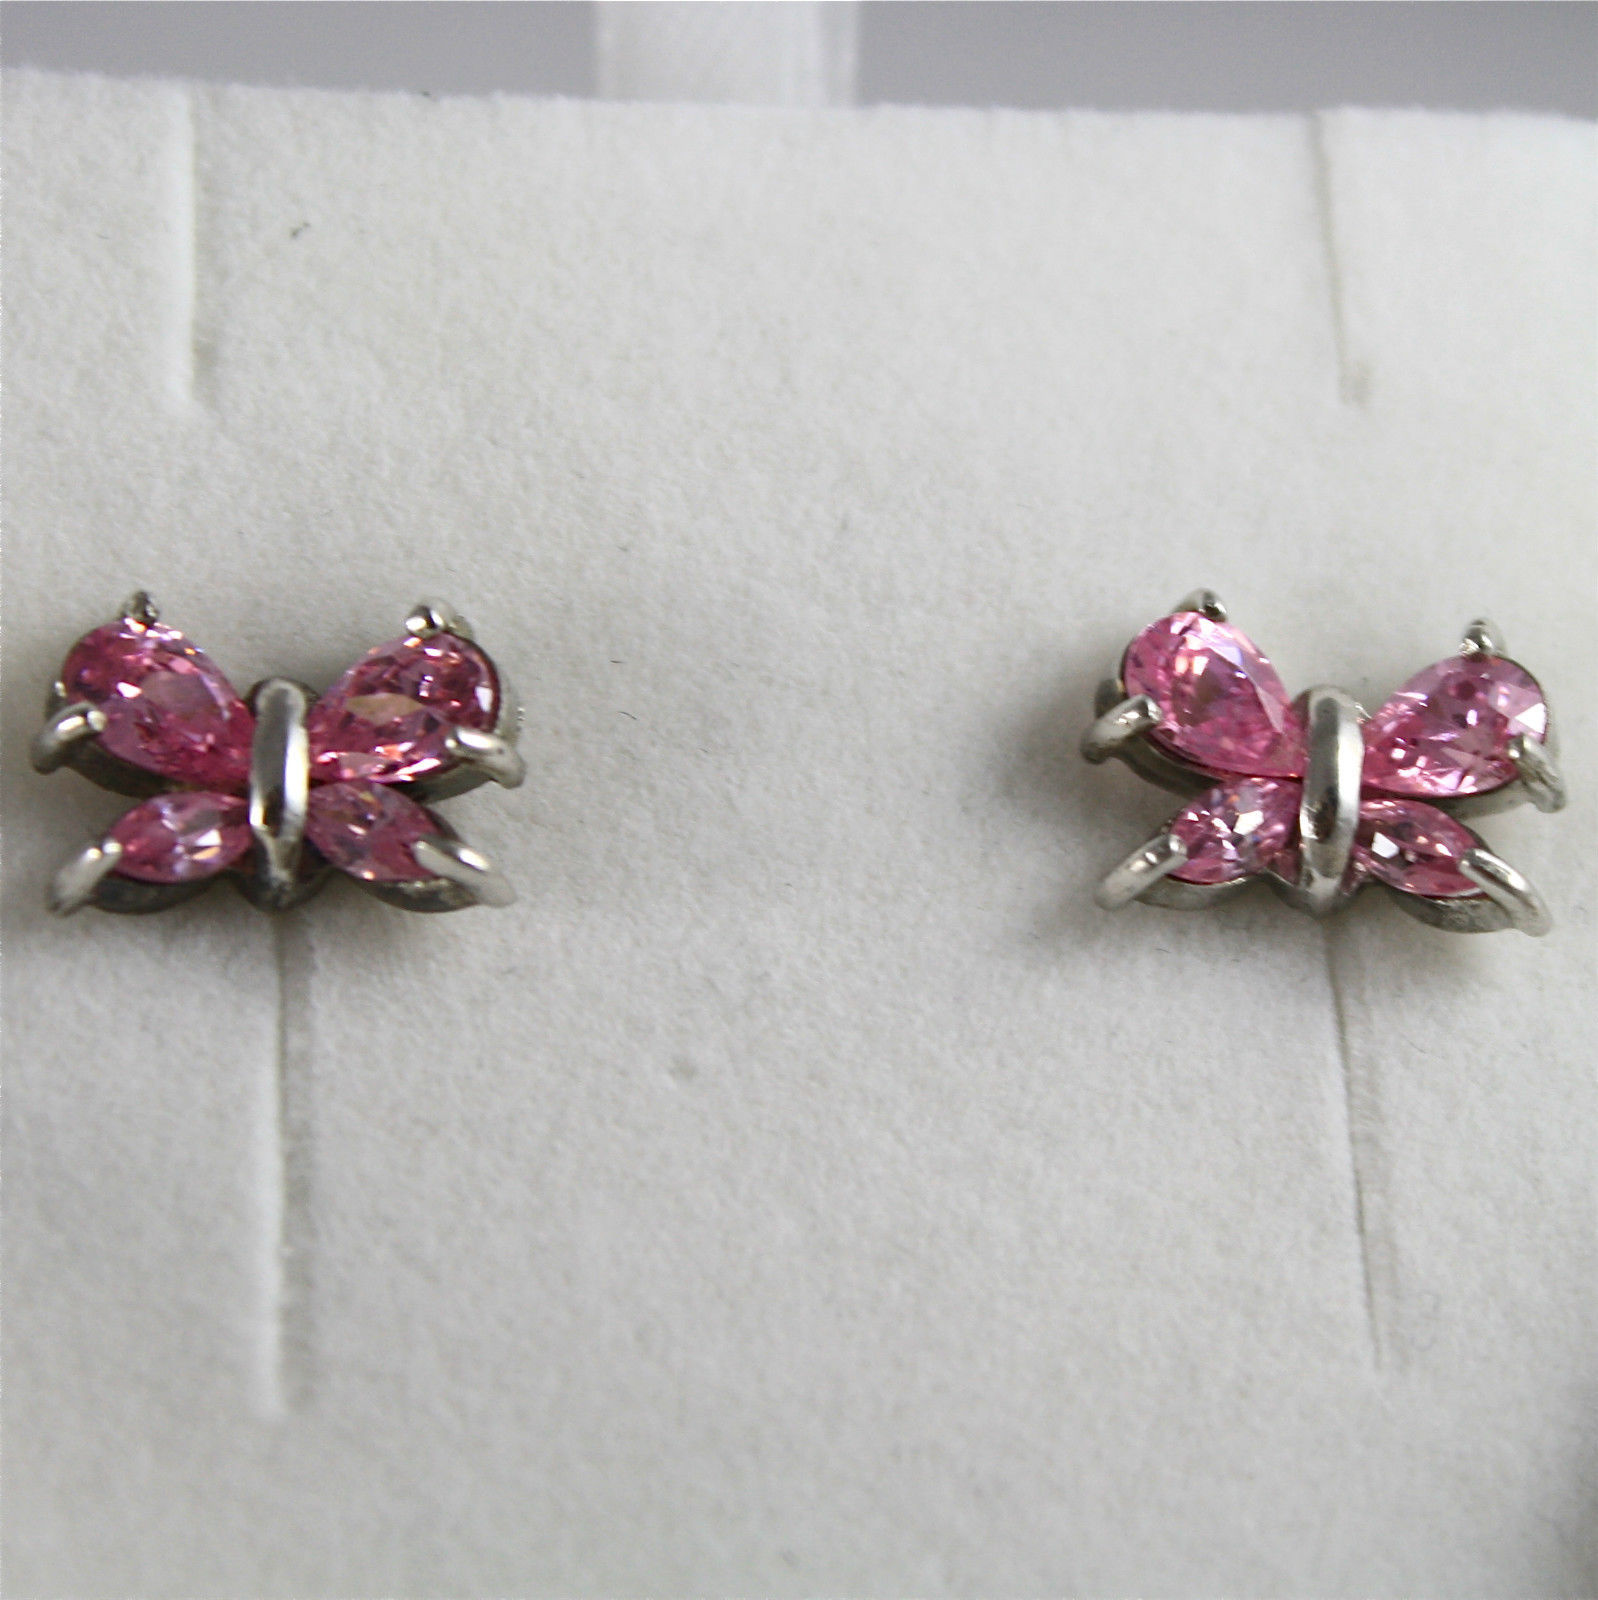 .925 RHODIUM SILVER EARRINGS, ROSE CRISTAL BUTTERFLYES, VINTAGE STYLE